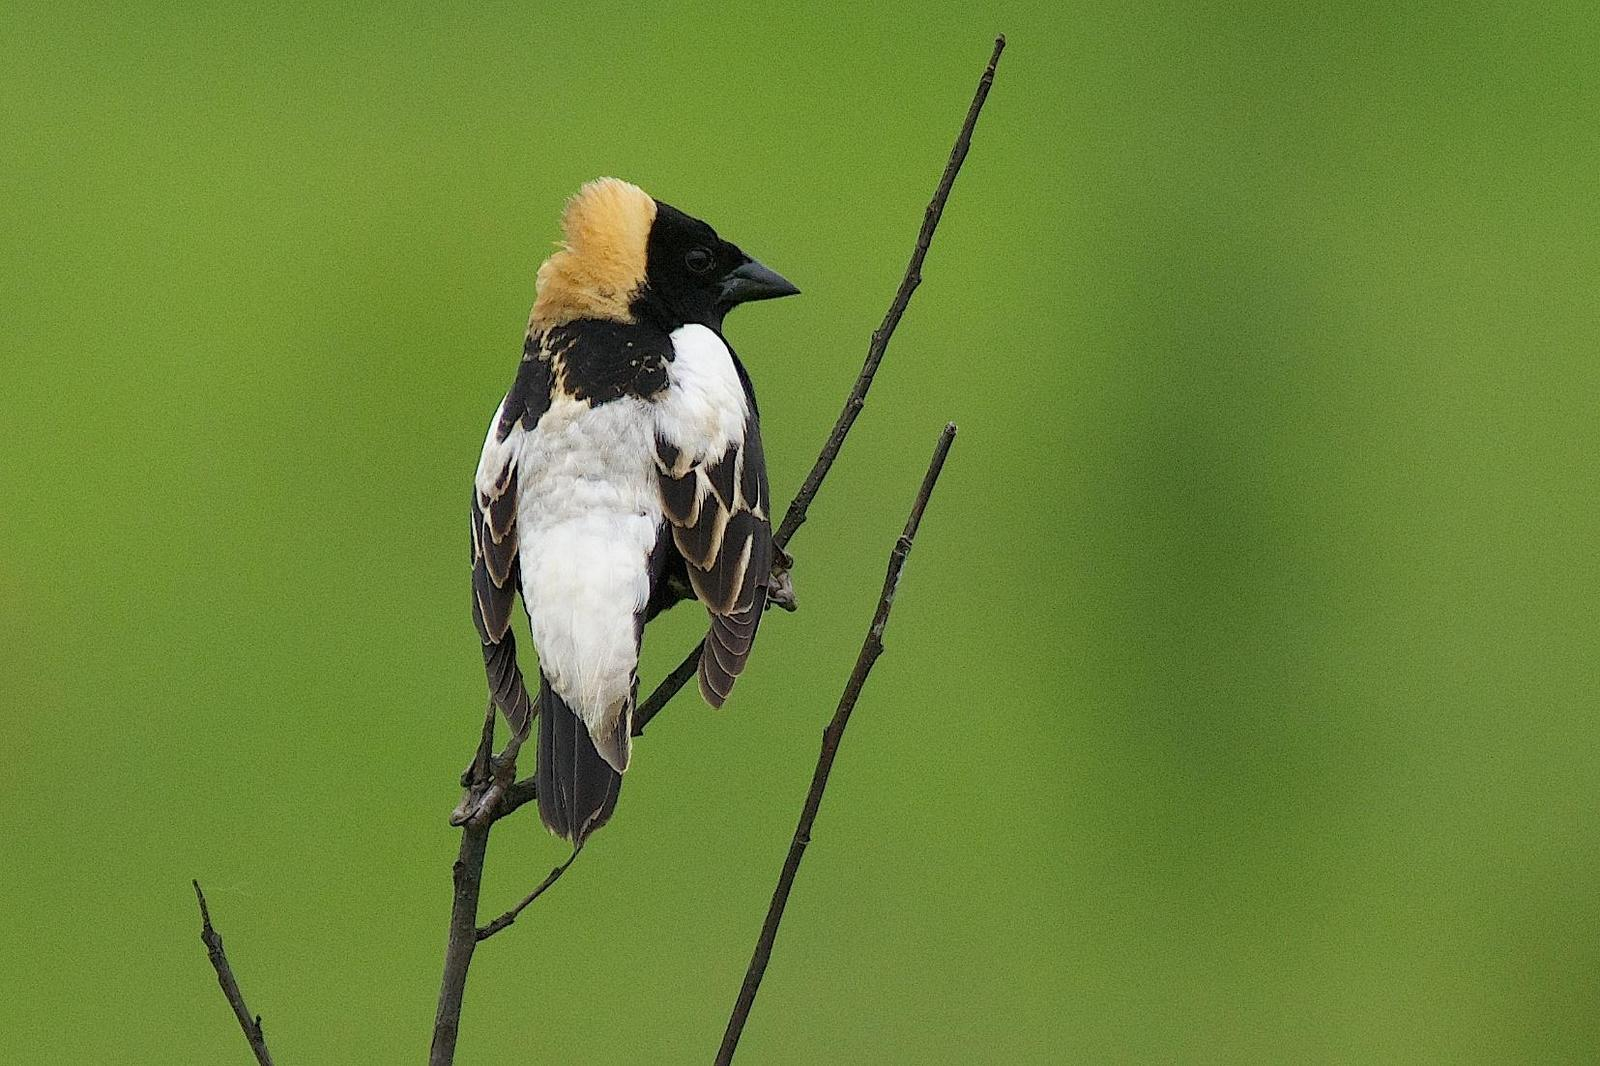 Bobolink Photo by Gerald Hoekstra